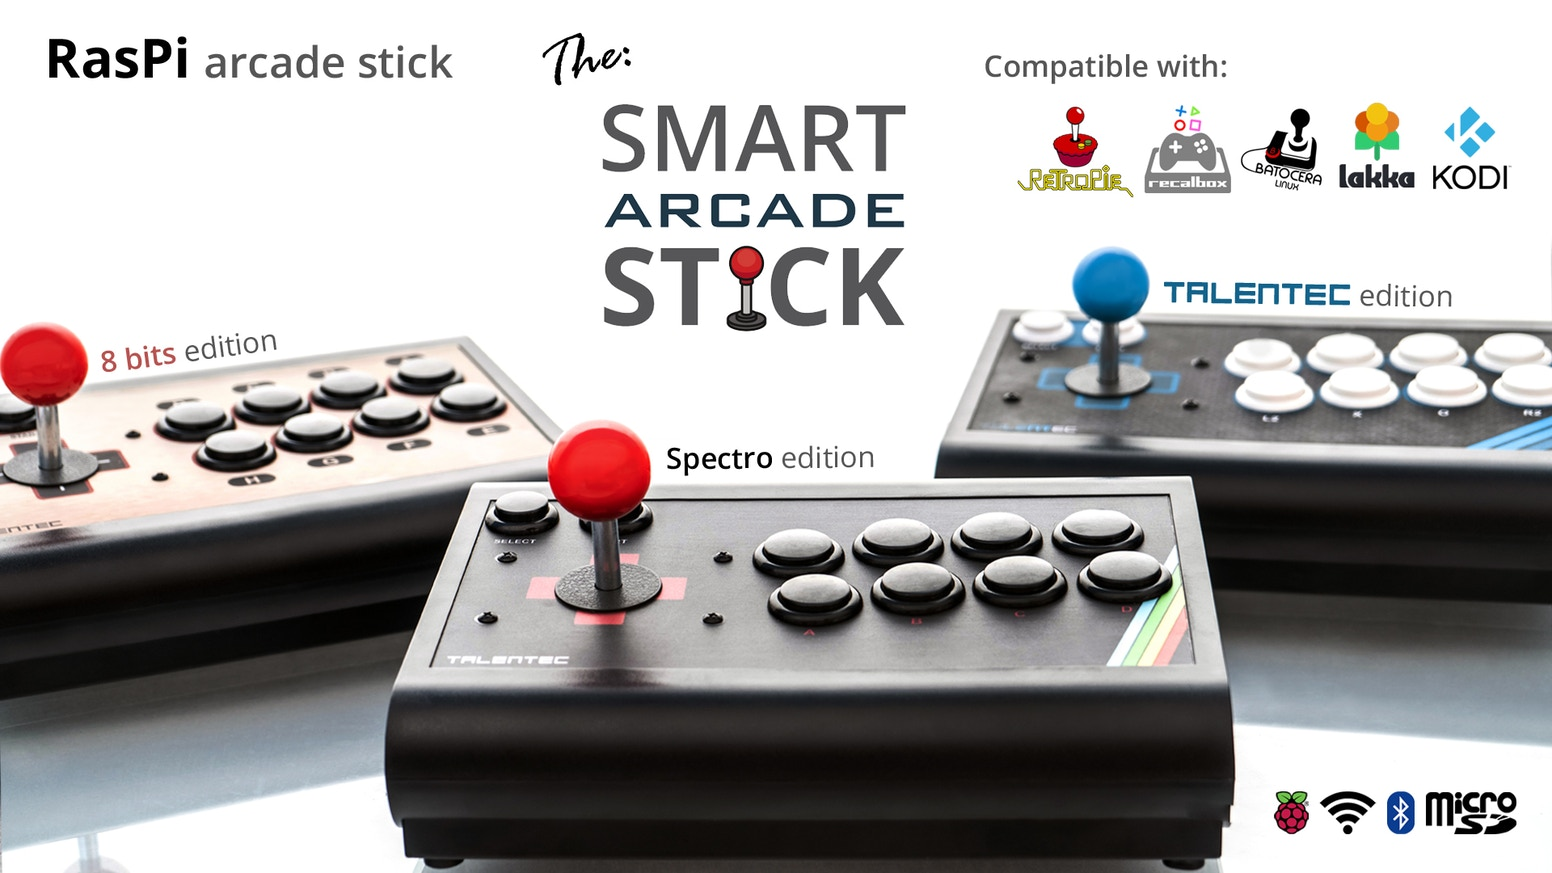 RasPi arcade stick | The customizable smart arcade stick by TALENTEC